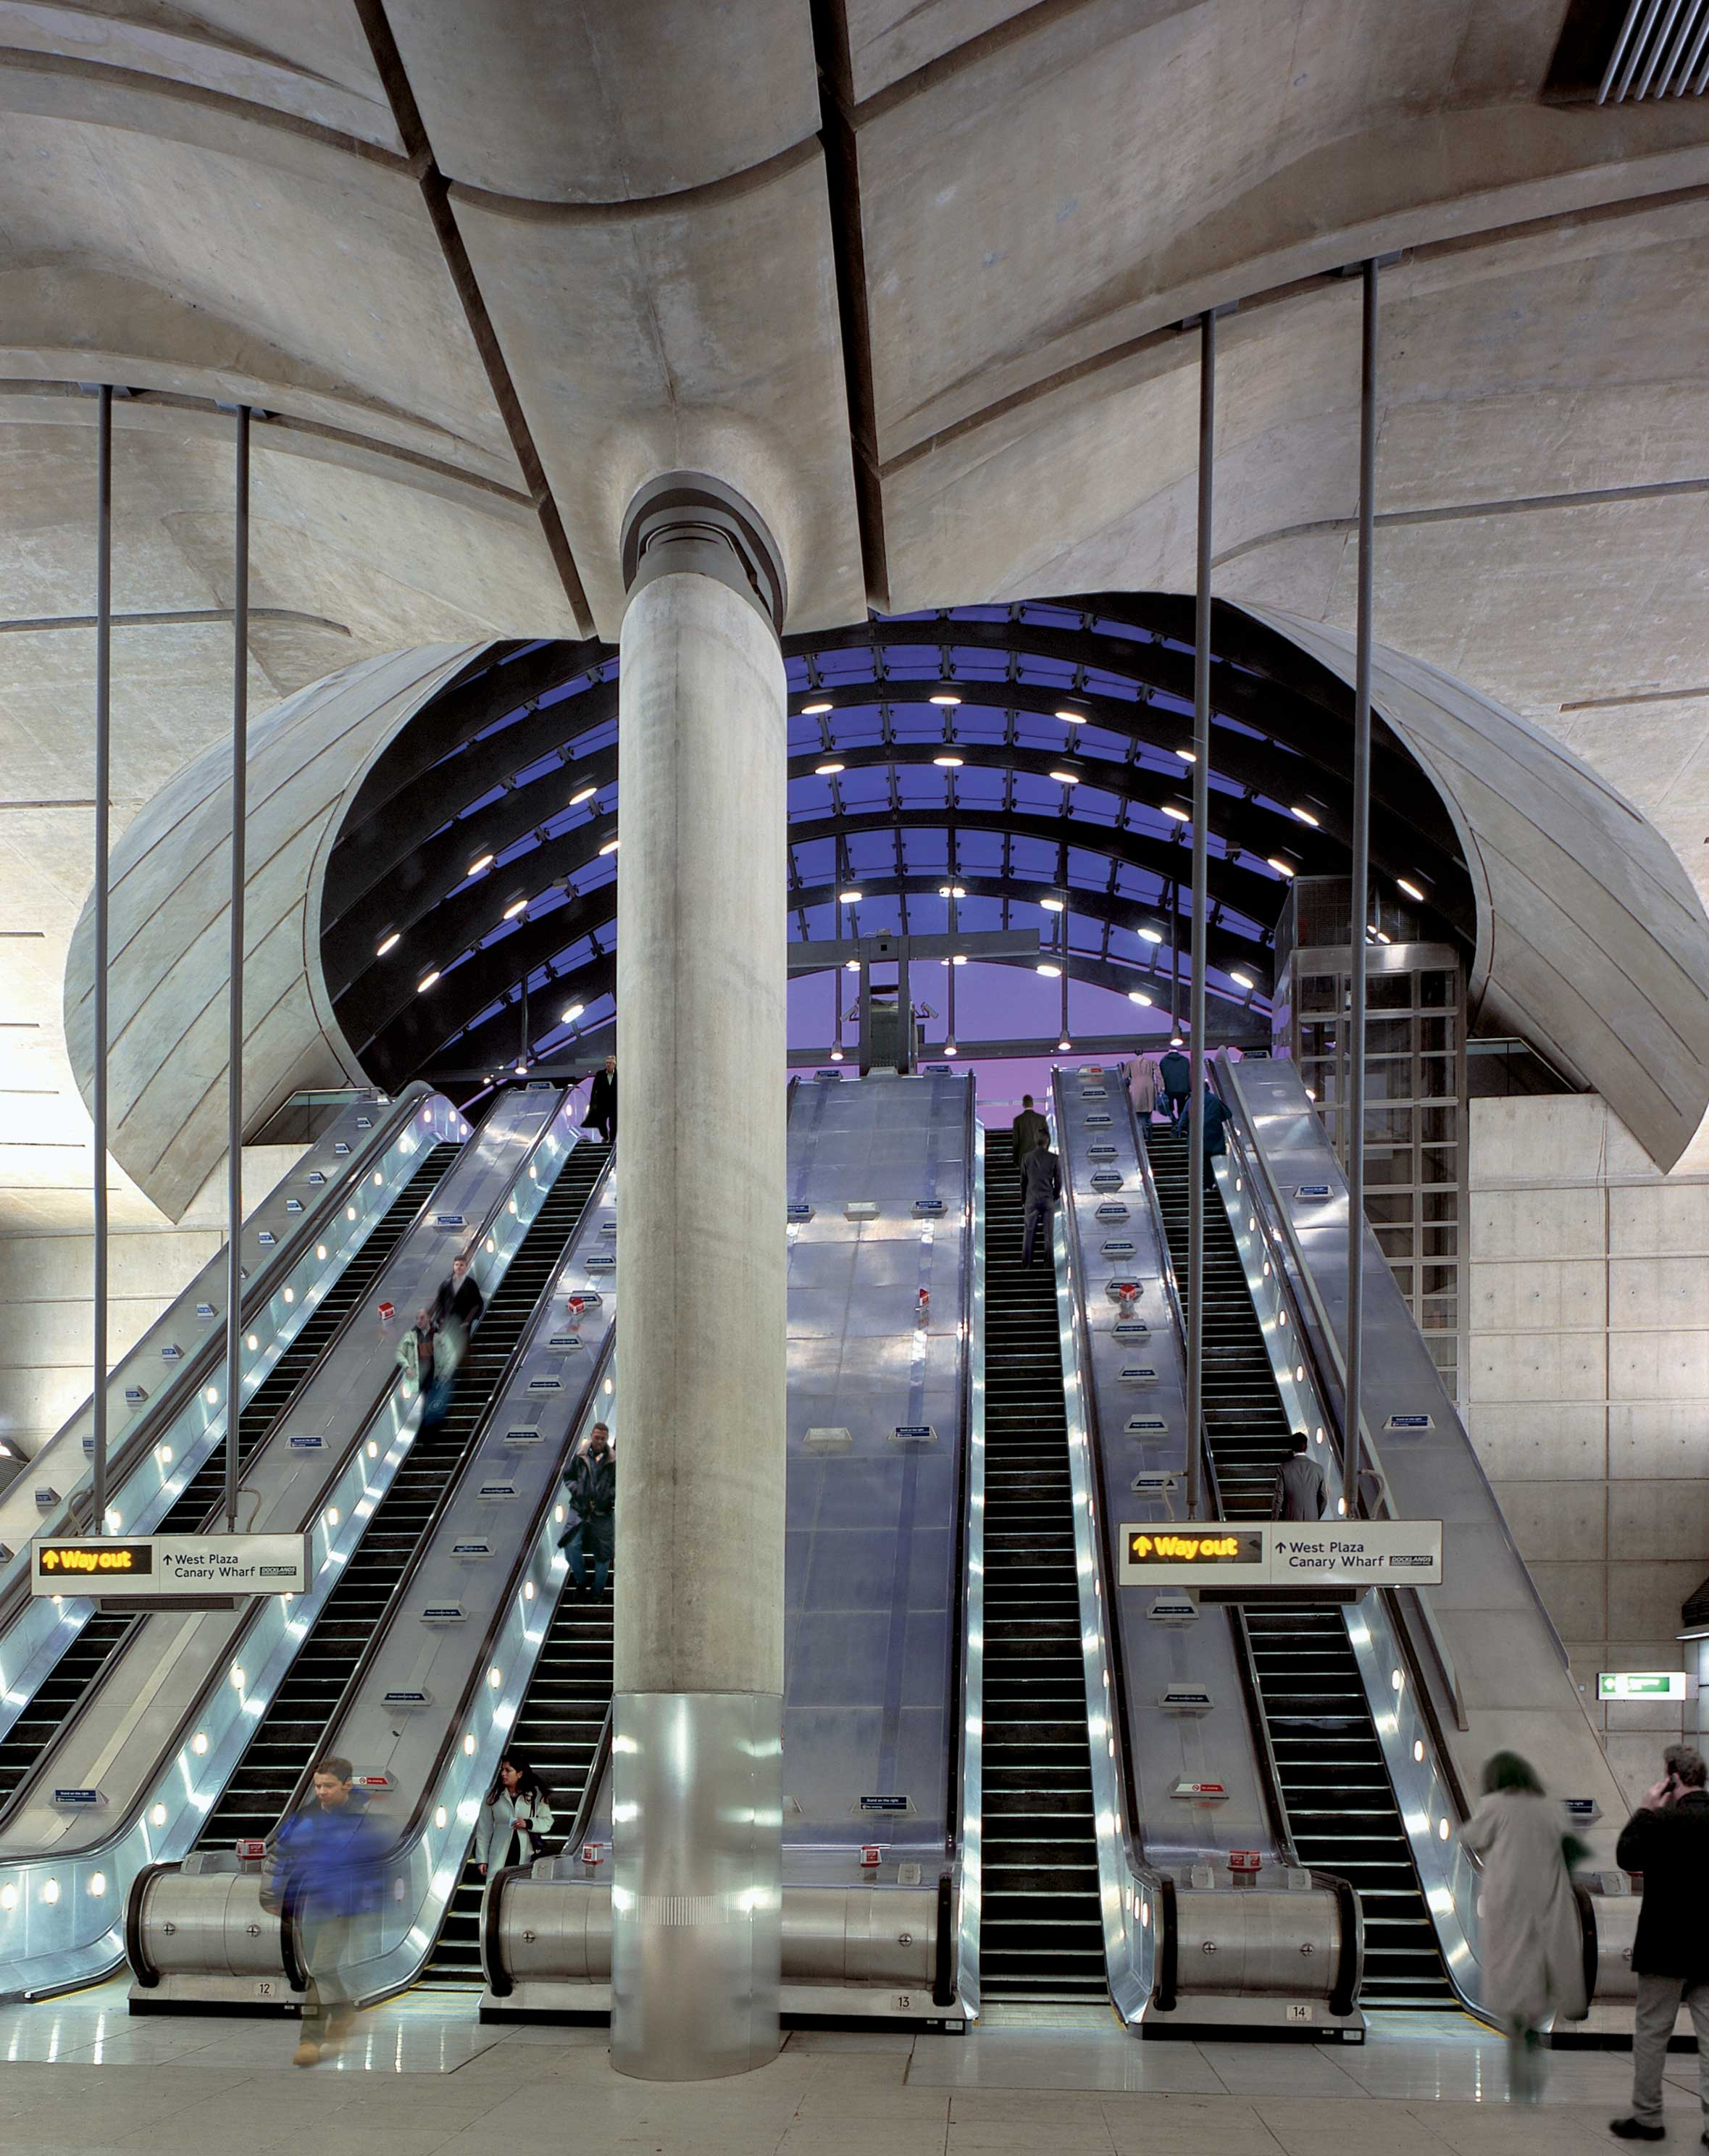 La estación que no vamos a tener: Canary Wharf en Londres (foto de Foster and Partners)